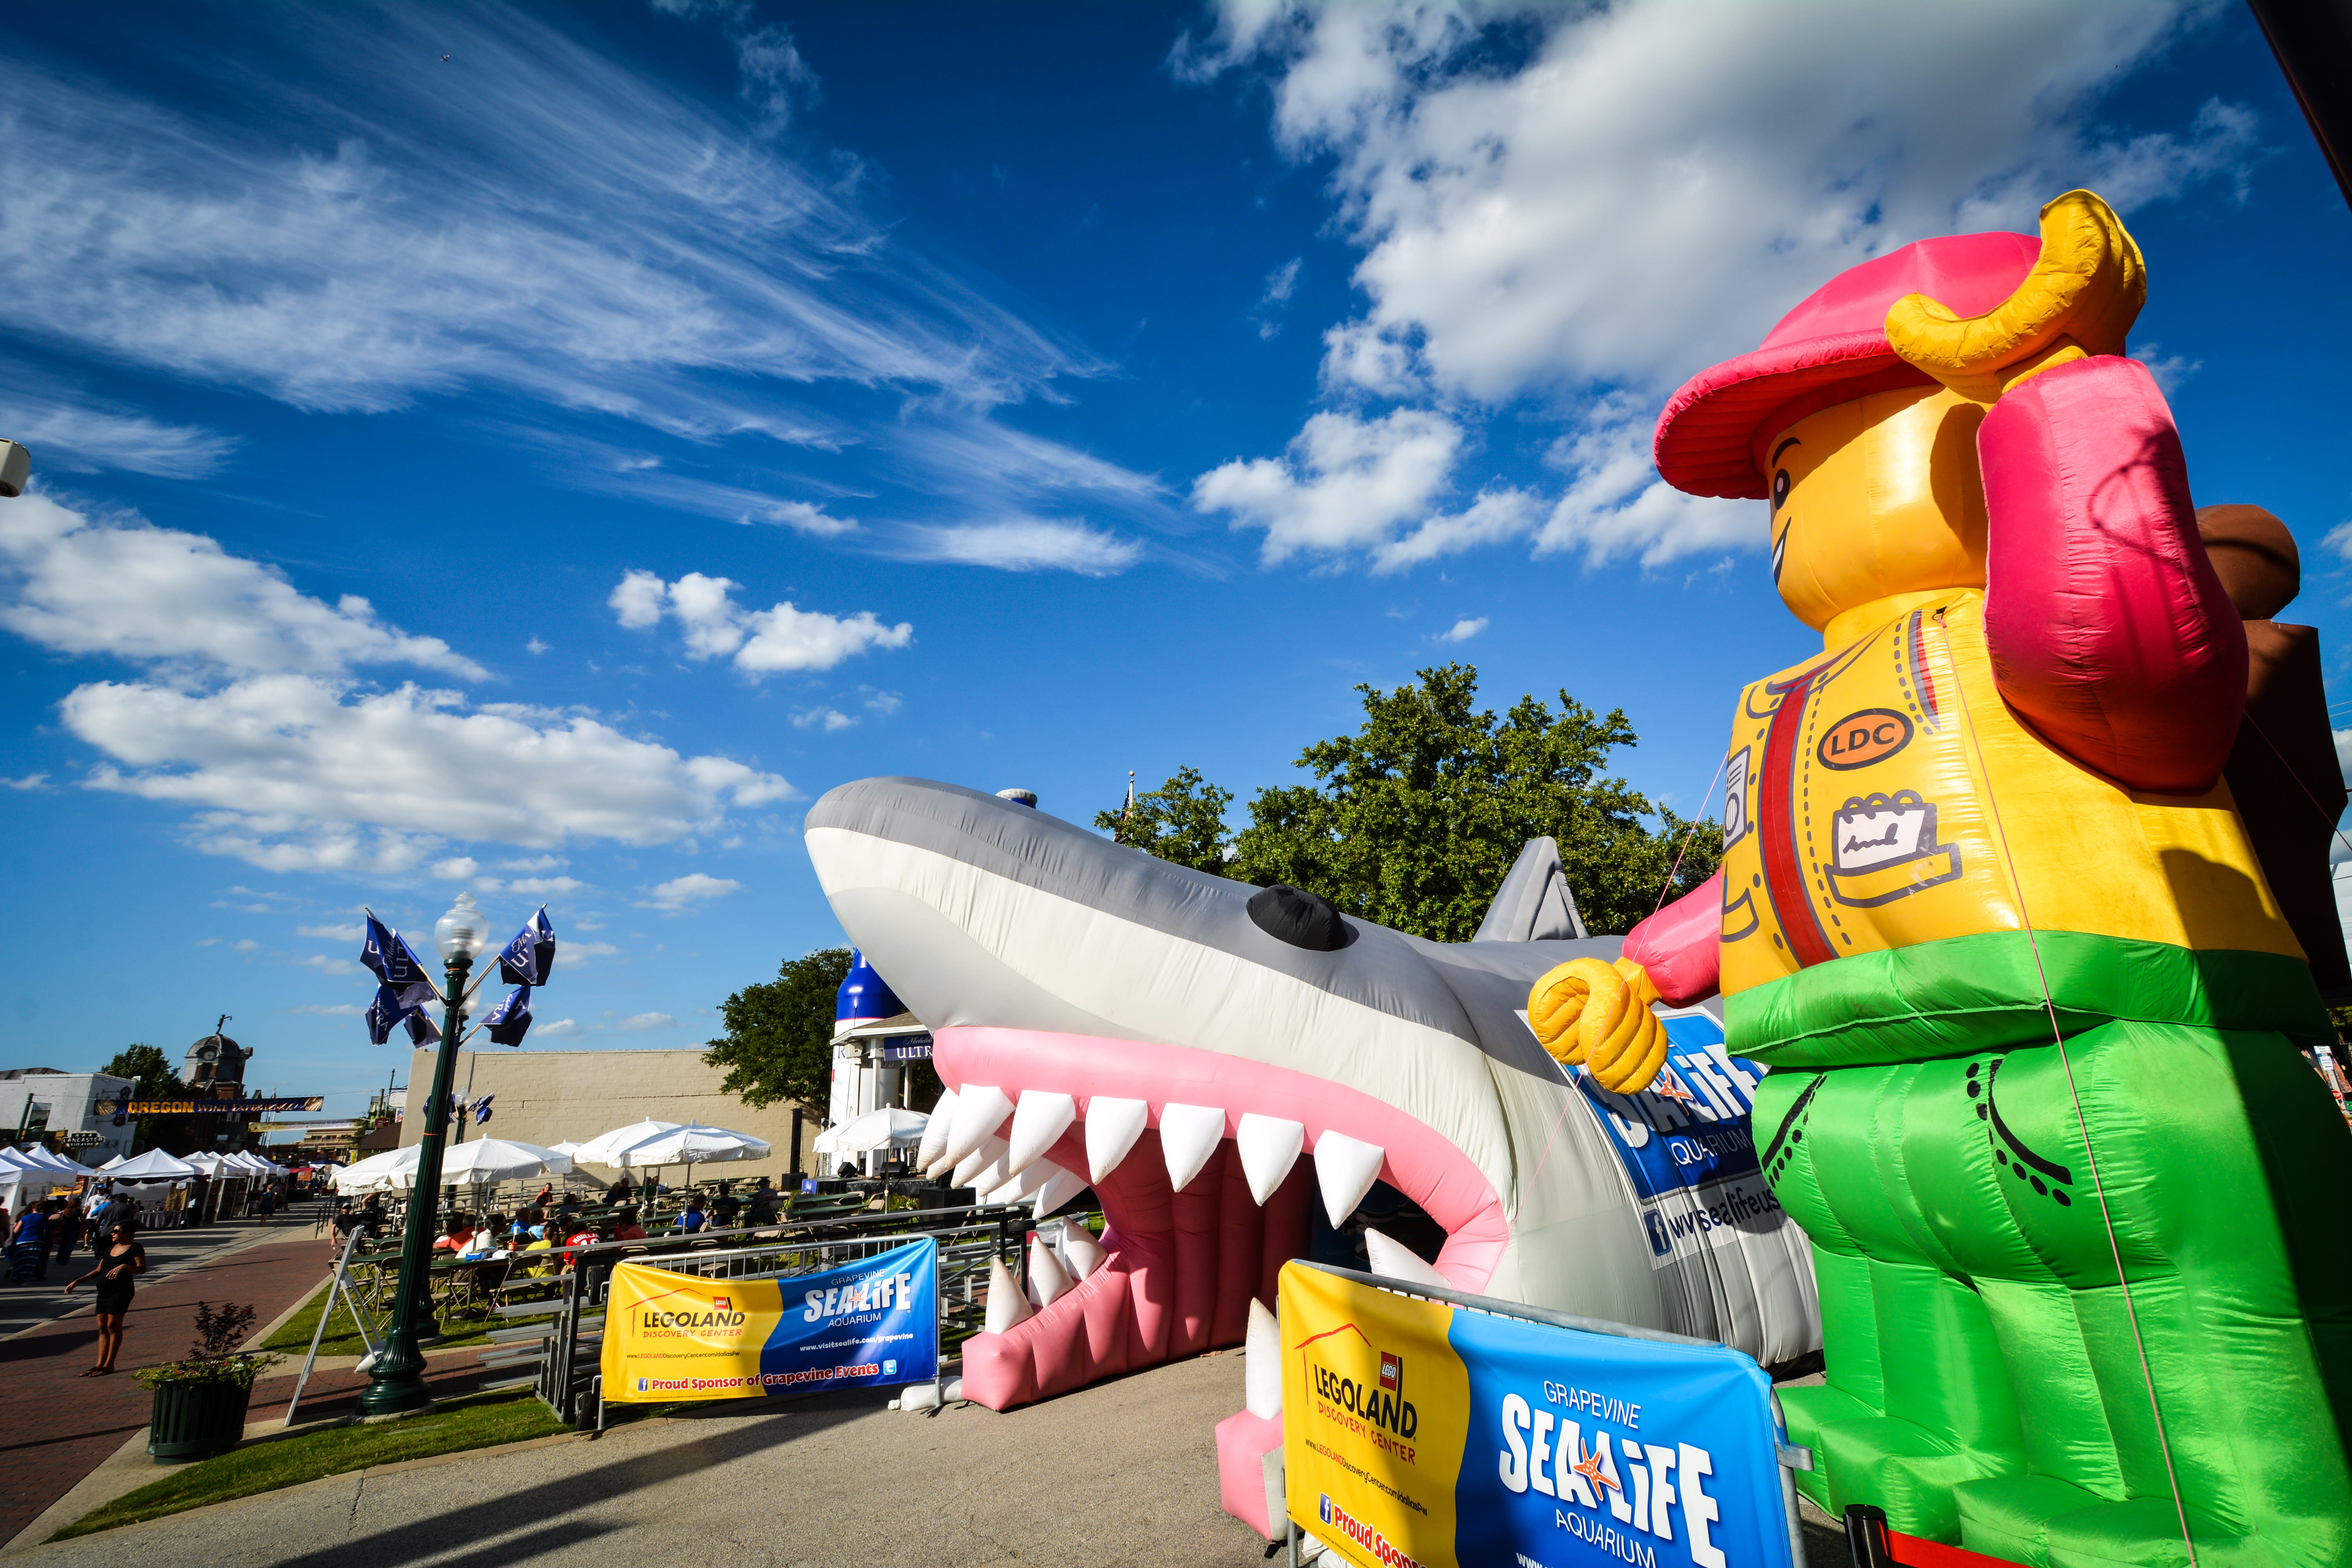 These Giant Inflatables Welcomed Guests to GrapeFest